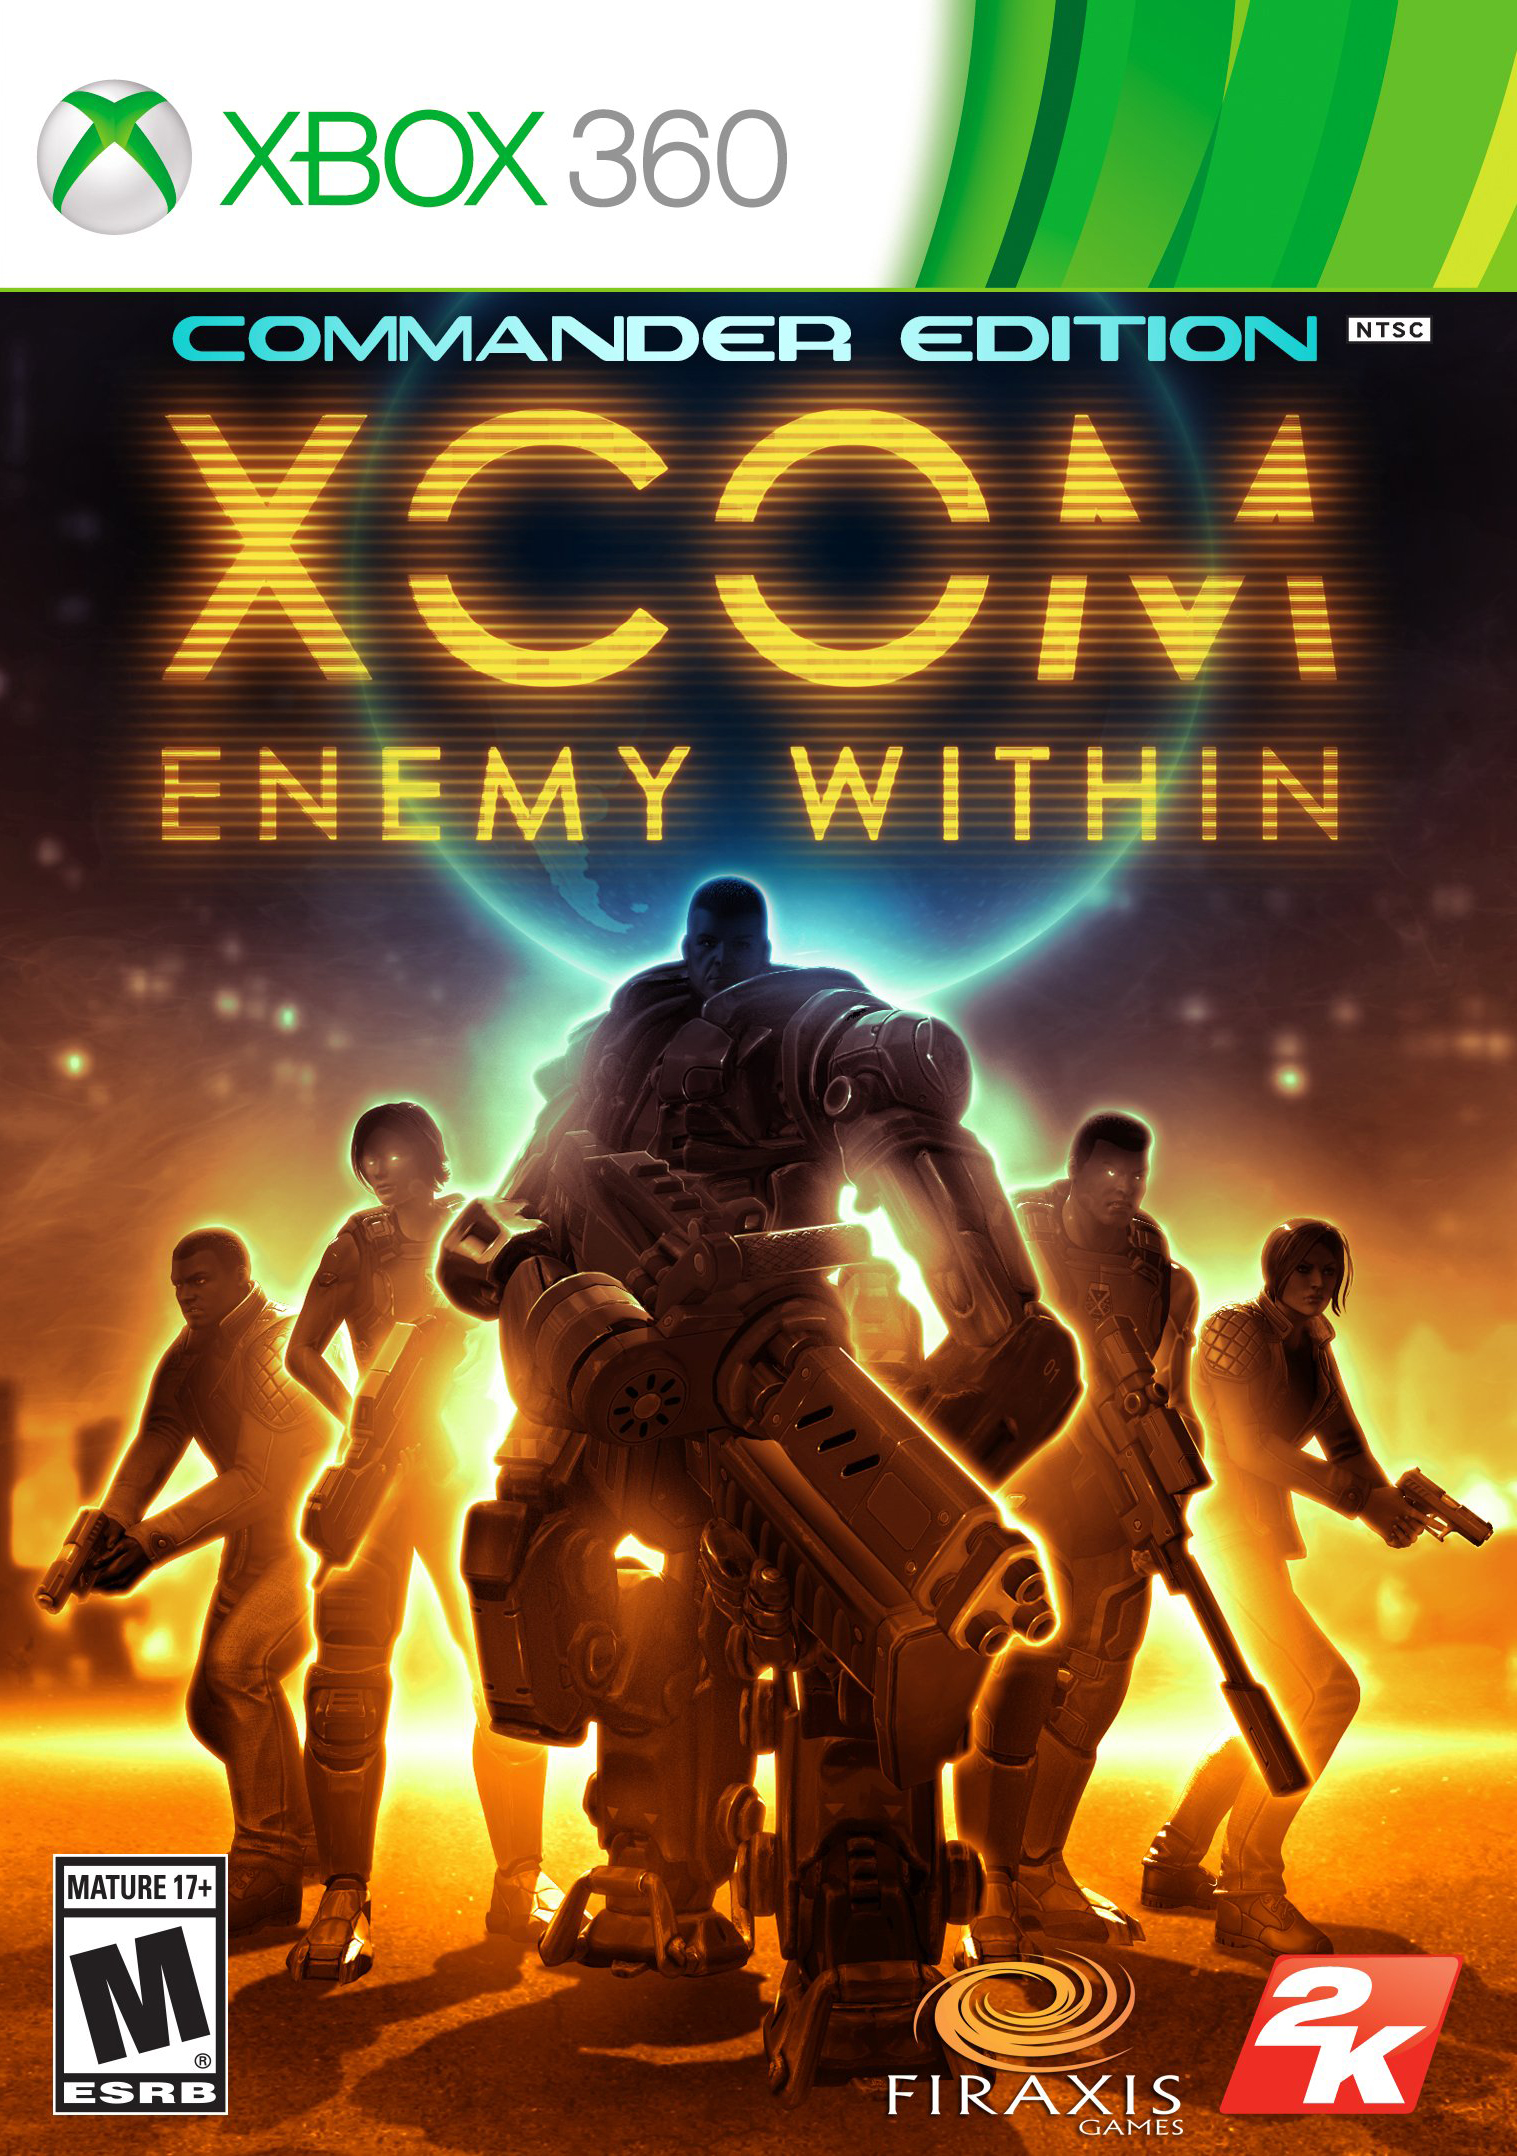 Obaly XCOM: Enemy Within a DriveClub 86785